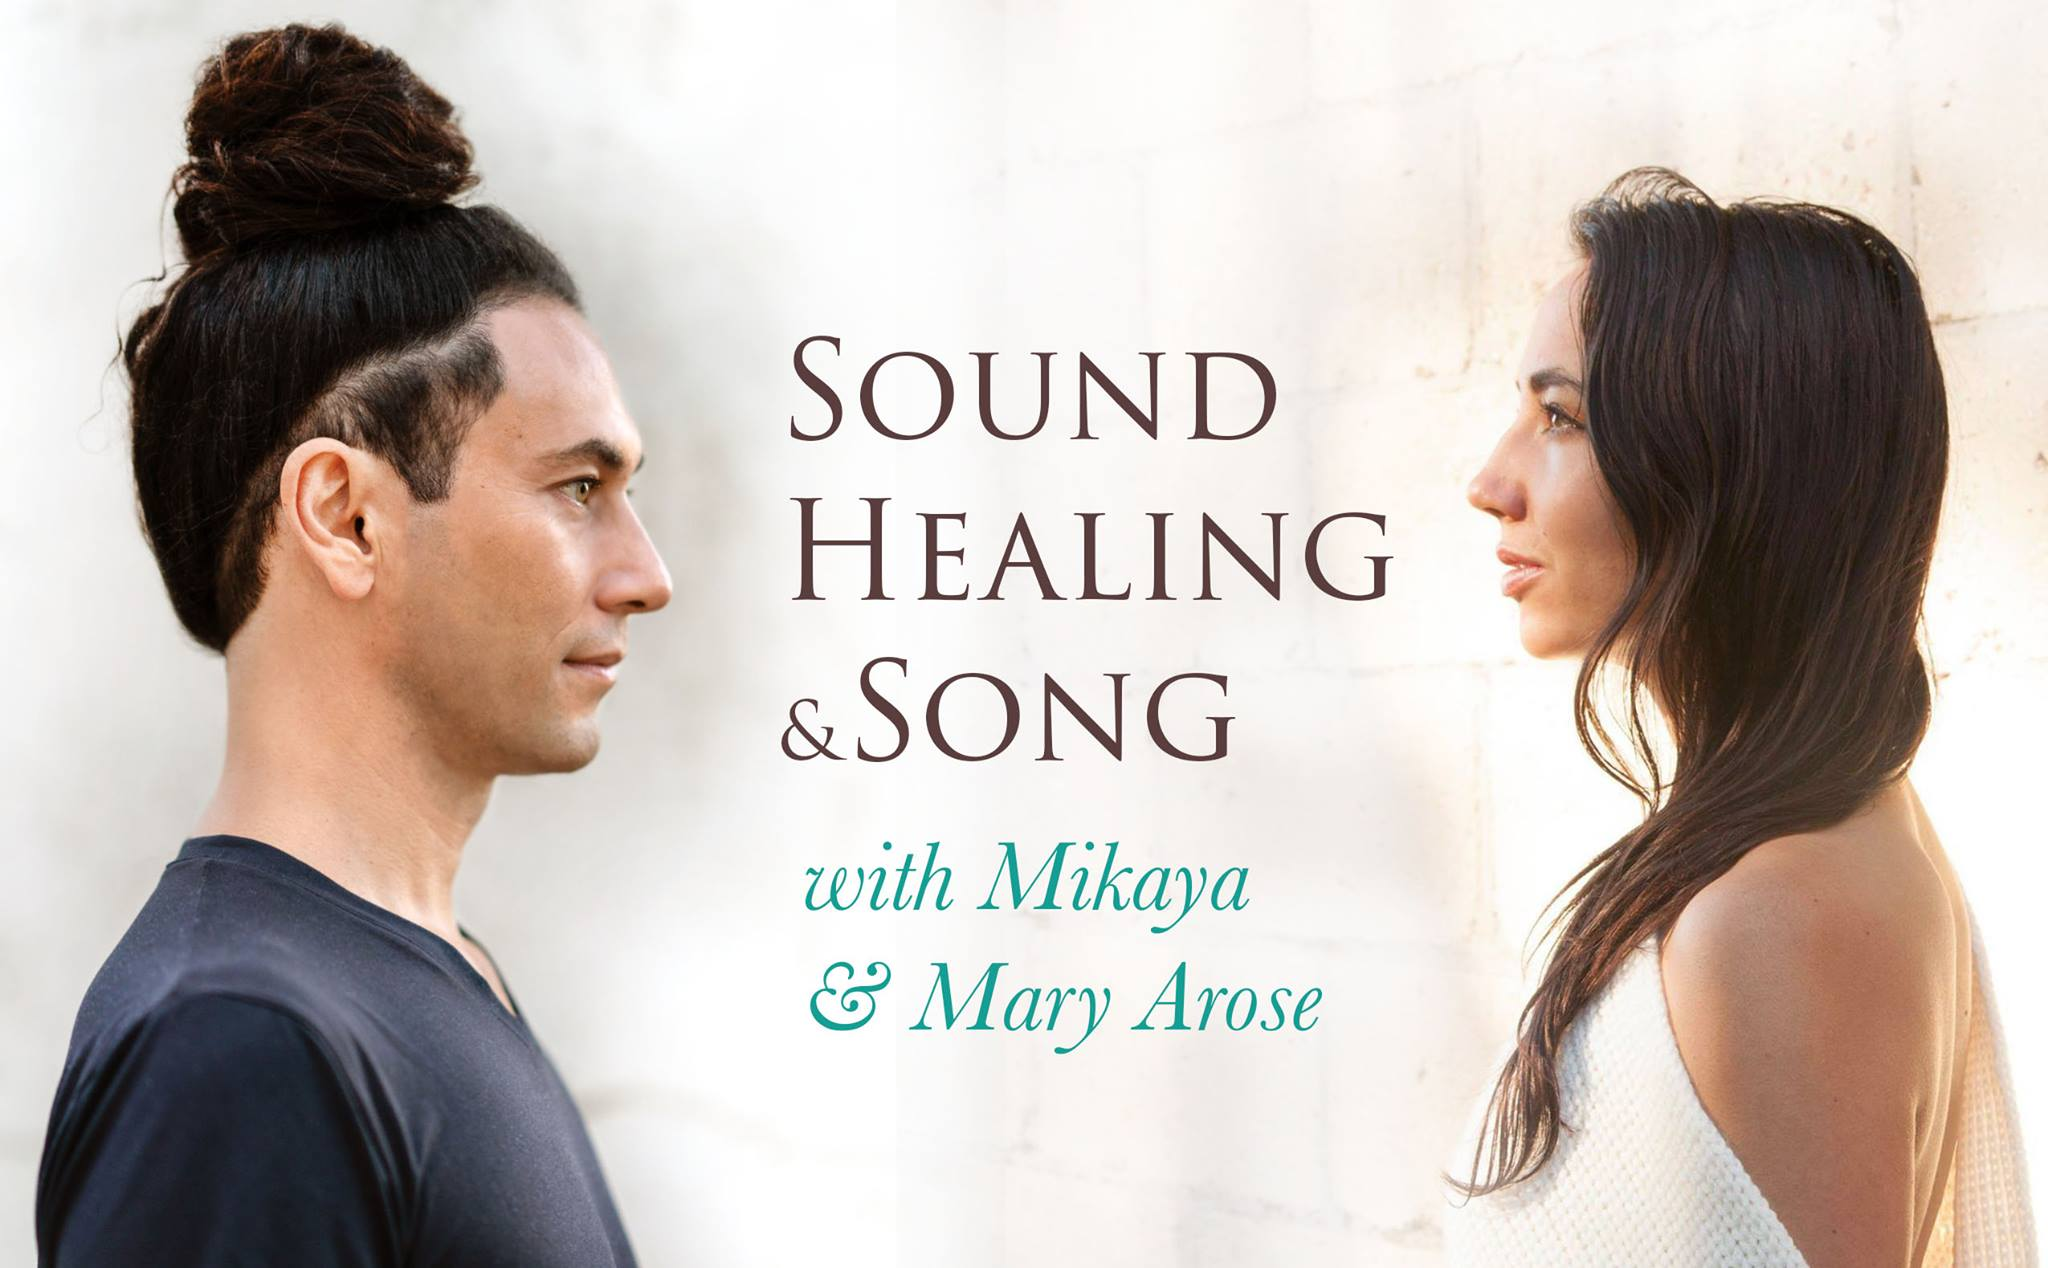 sound healing and song with mary arose and mikaya.jpg